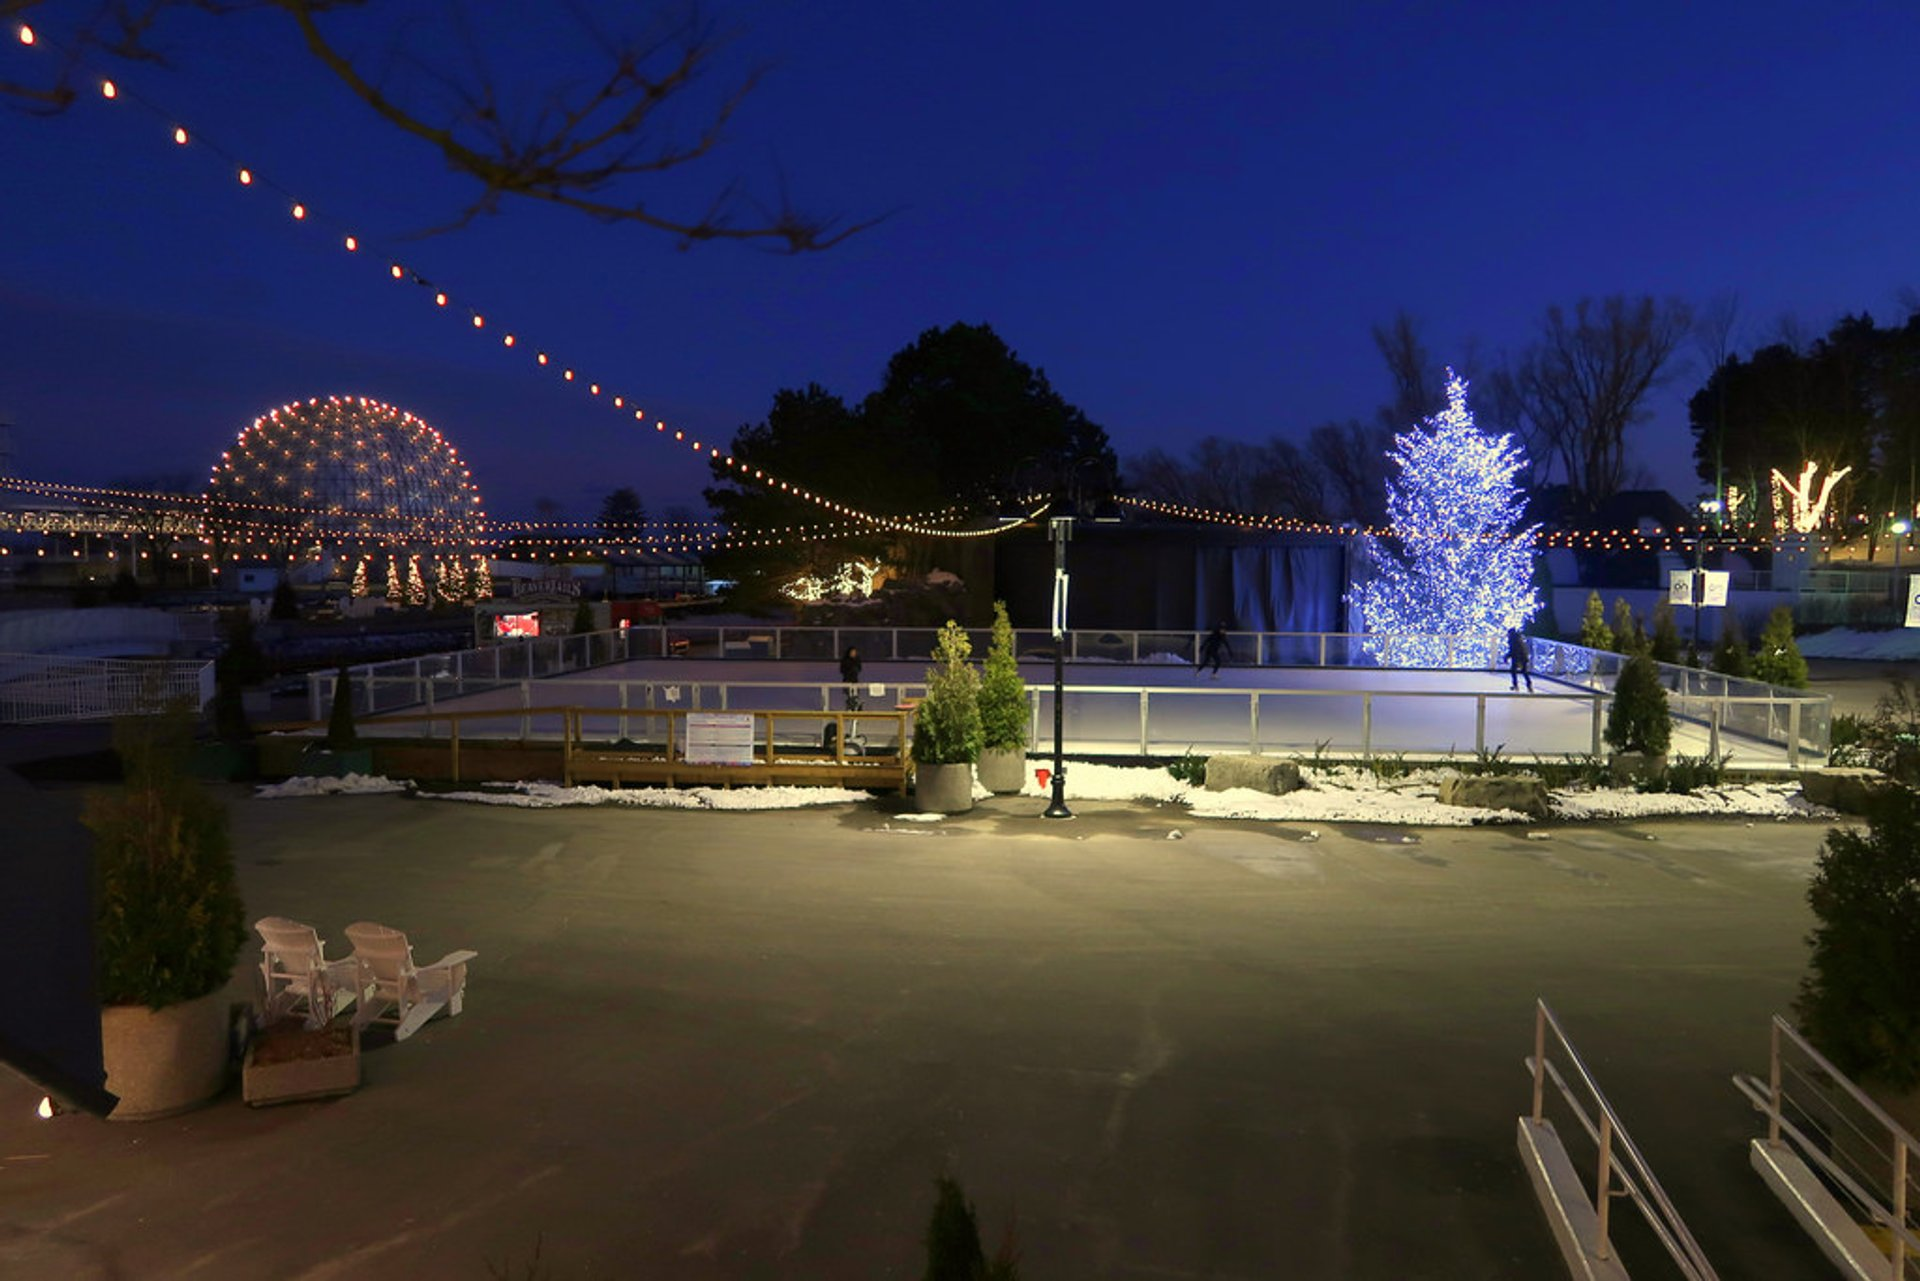 Winter at Ontario Place in Toronto 2020 - Best Time